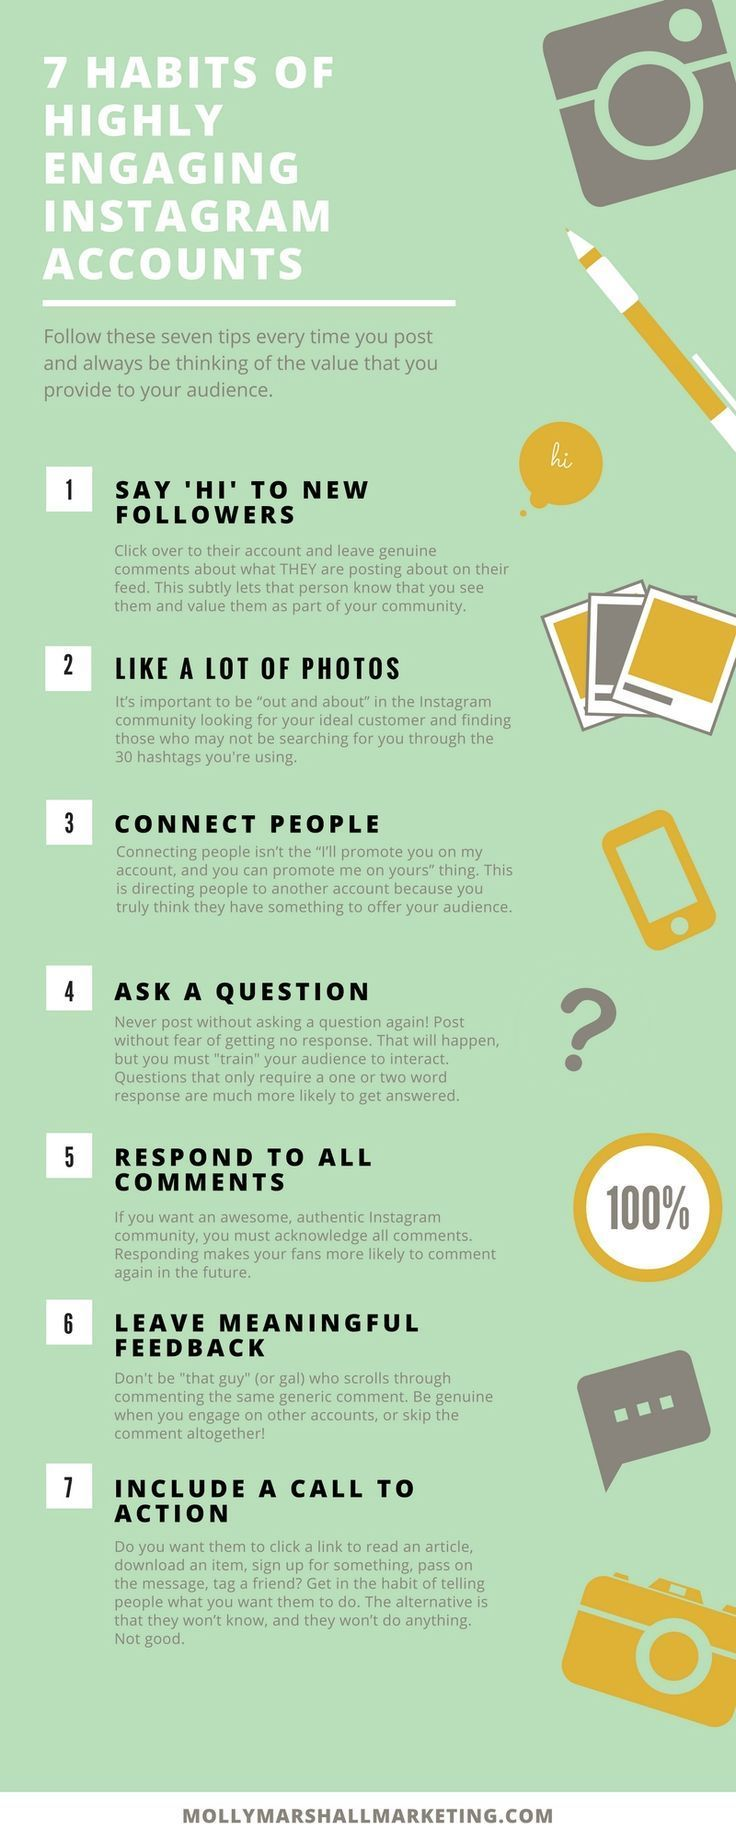 7 Ways To Increase Engagement With Your Instagram Followers In 2020 Instagram Engagement Marketing Strategy Social Media Instagram Marketing